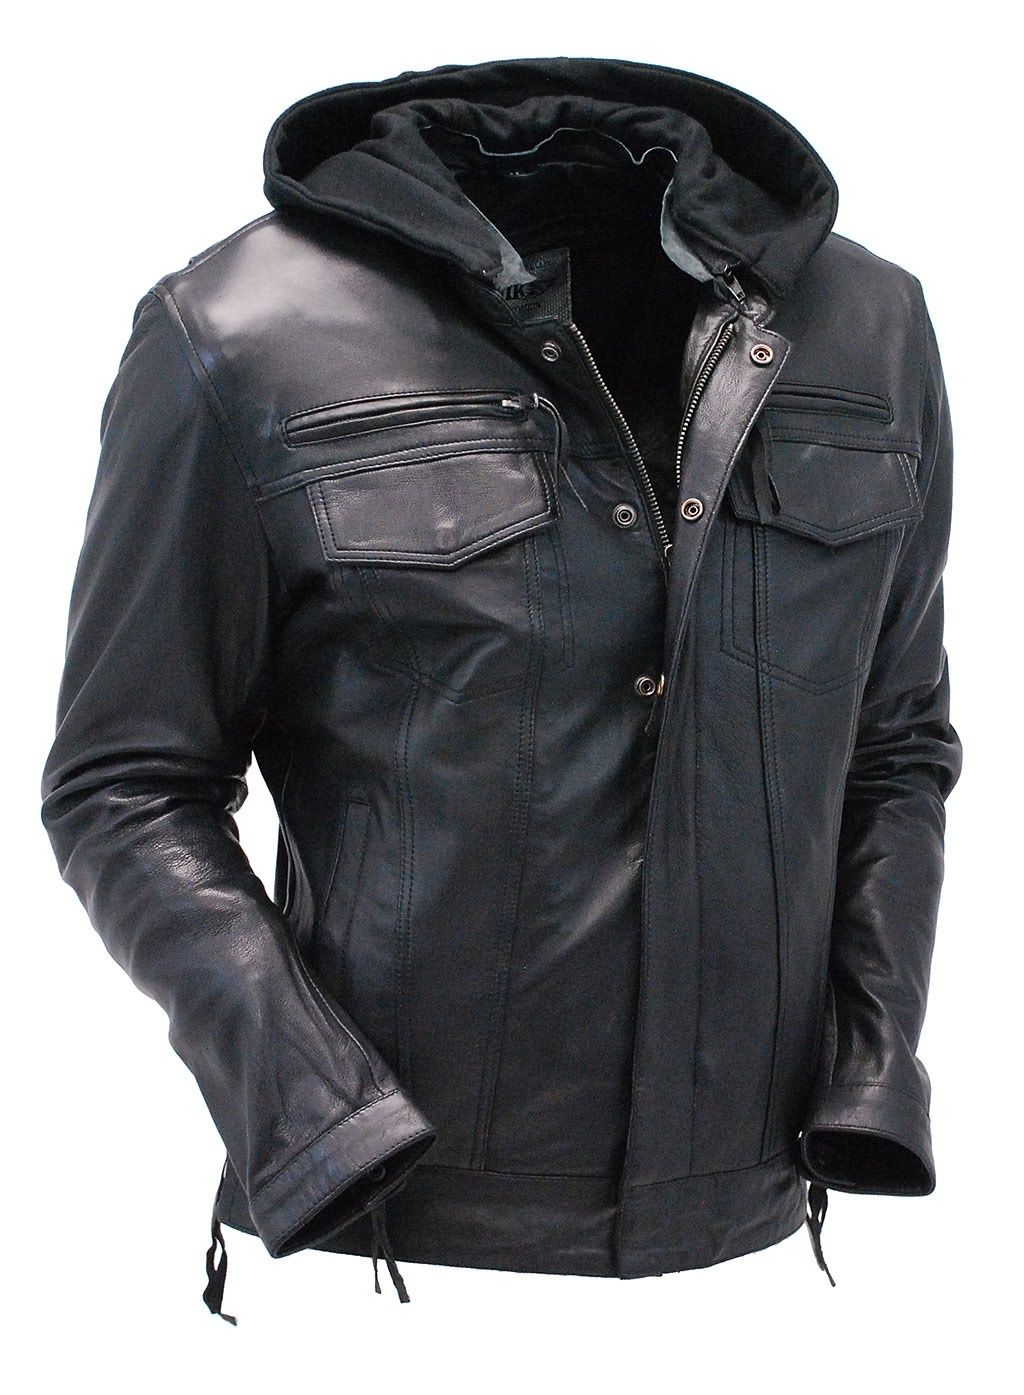 Men S Black Lambskin Hooded Jean Ccw Jacket W Vents M6905ghk Leather Hoodie Leather Jacket With Hood Black Leather Jeans [ 1395 x 1024 Pixel ]